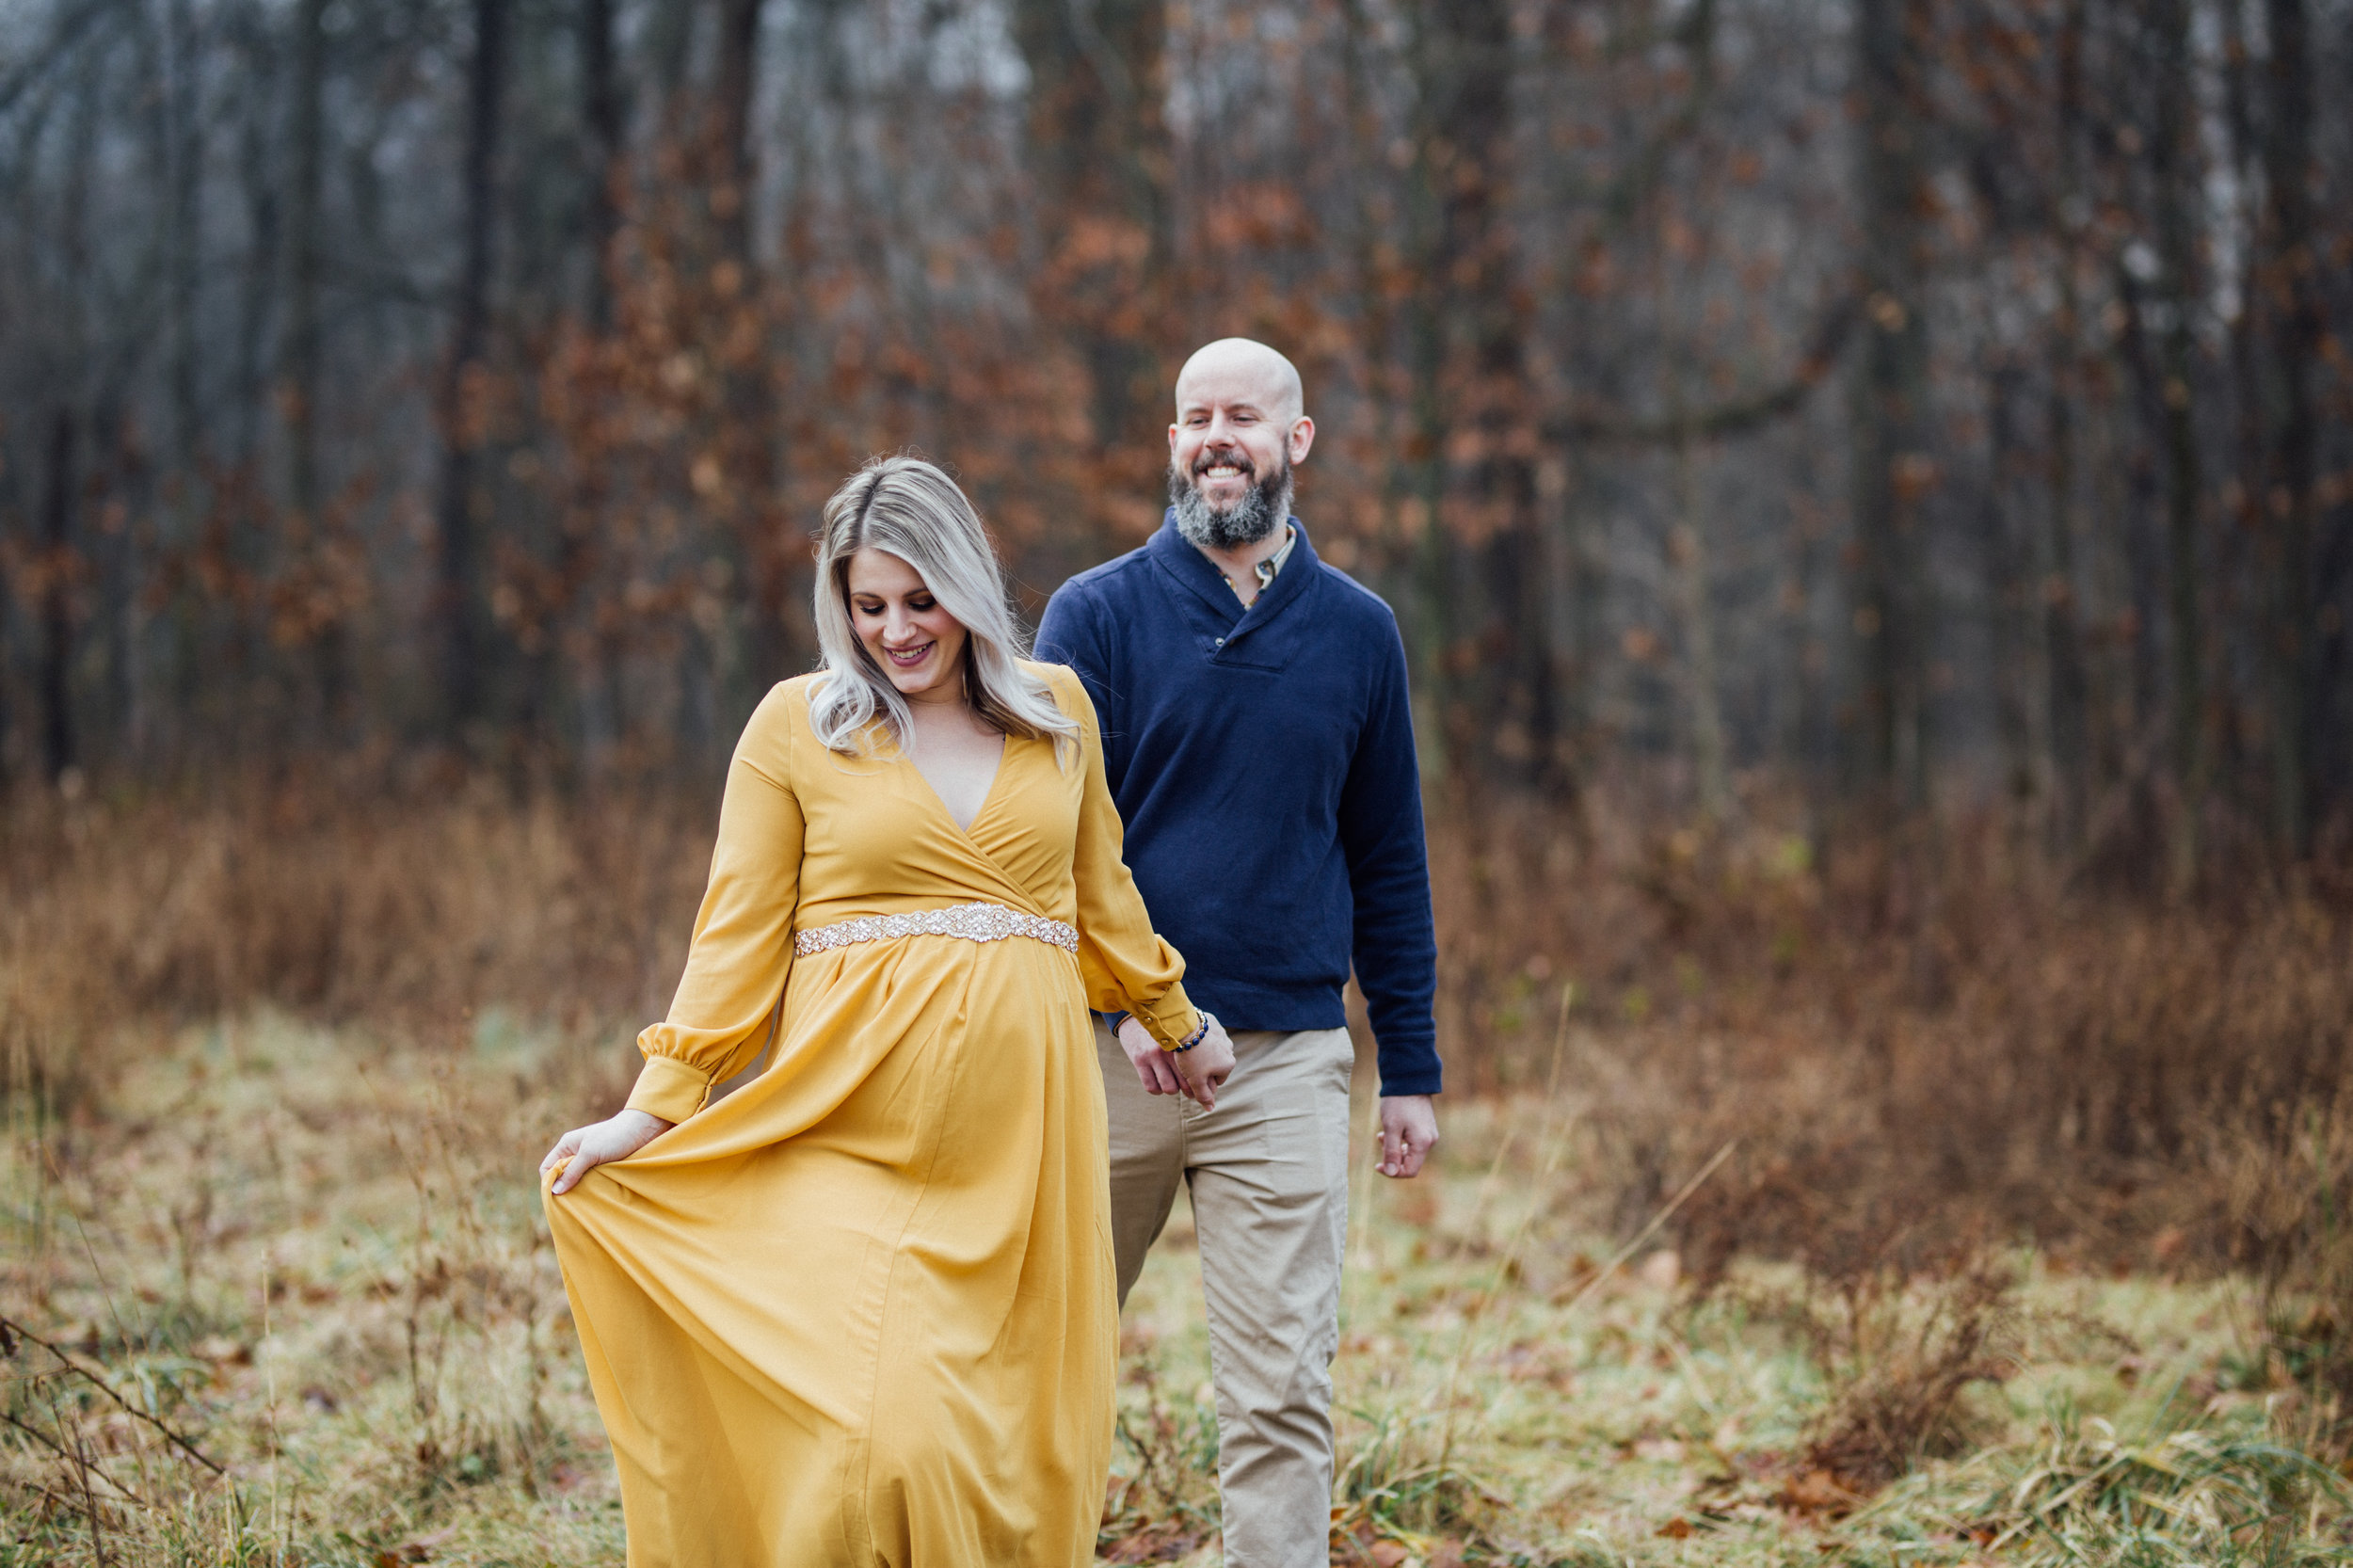 Rocky River, Ohio Maternity Photographer // Carrie Hall Photography